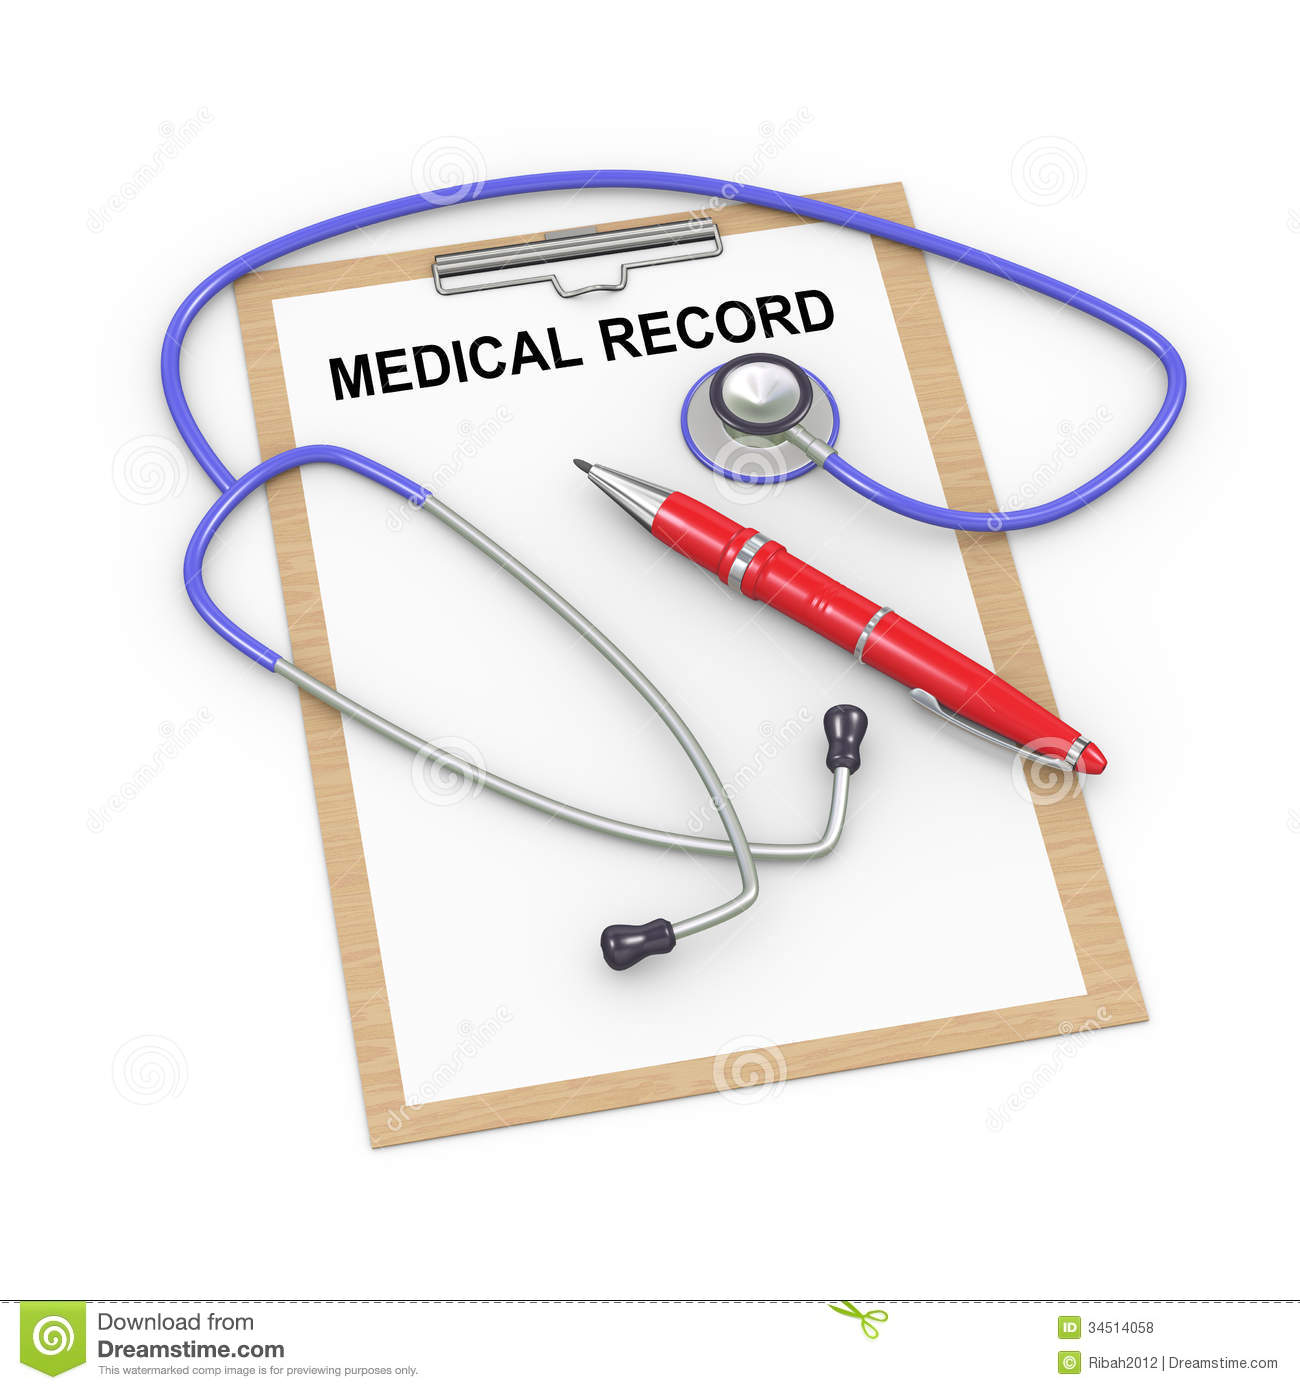 illustration of stethoscope, pen and medical history record clipboard